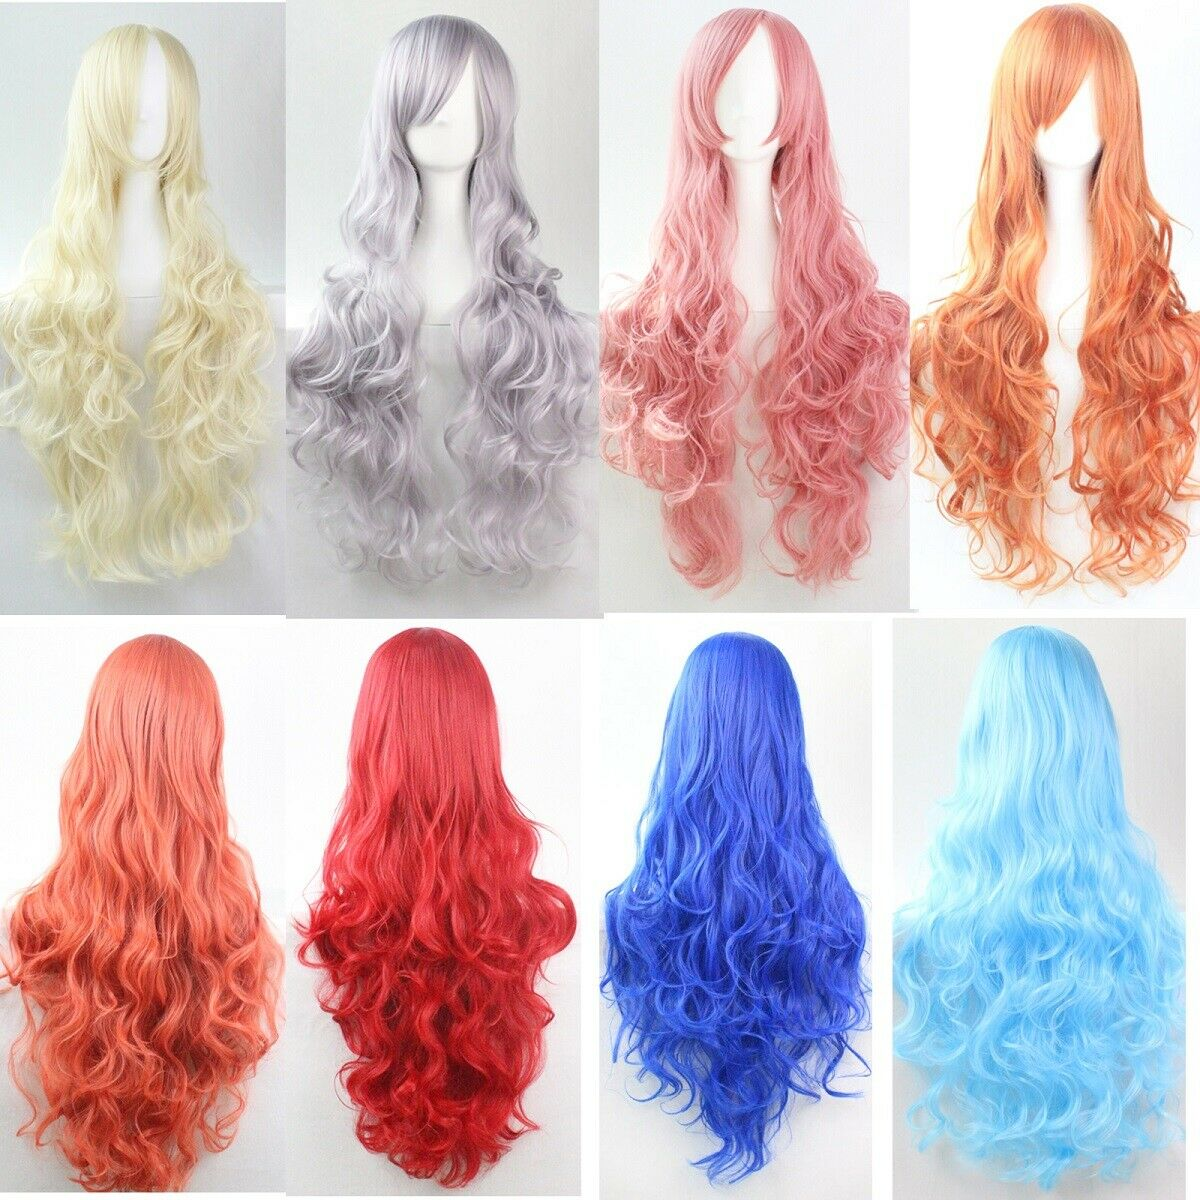 80cm Long Curly Fashion Cosplay Costume Party Hair Anime Wigs Full Hair Wavy Wig